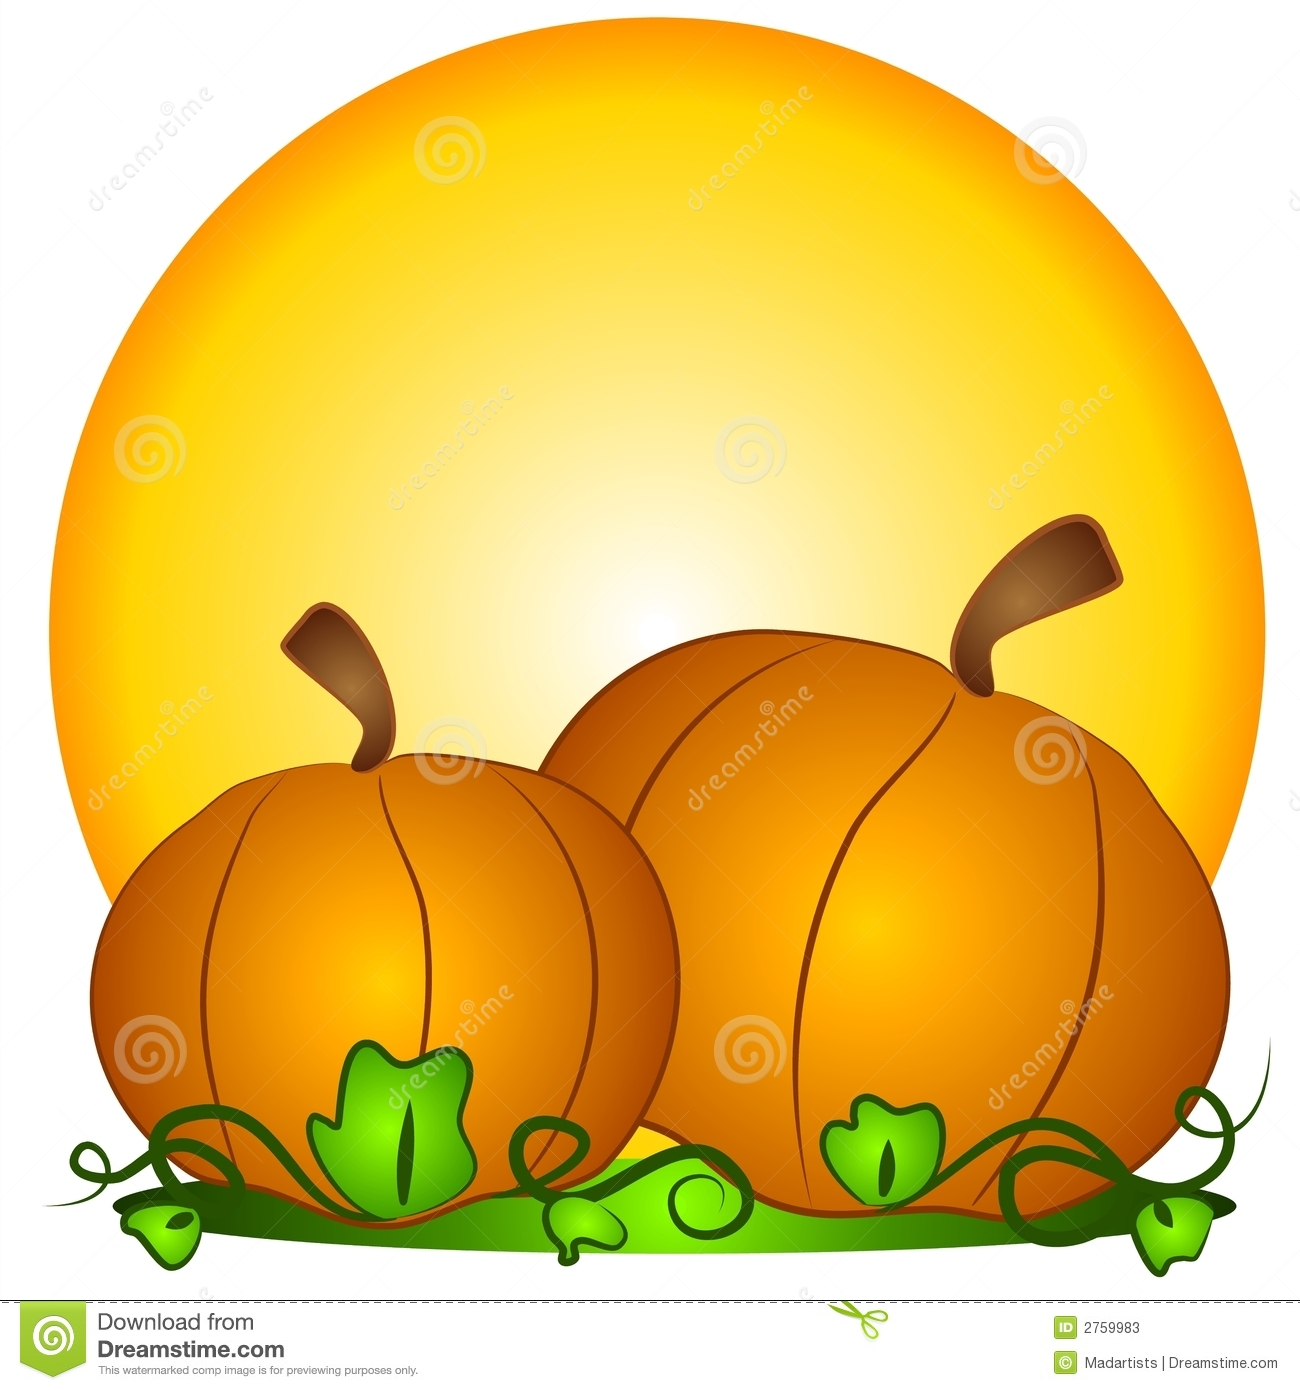 hight resolution of a couple of big orange pumpkins in a pumpkin patch with sun in the background a classic symbol for thanksgiving and halloween